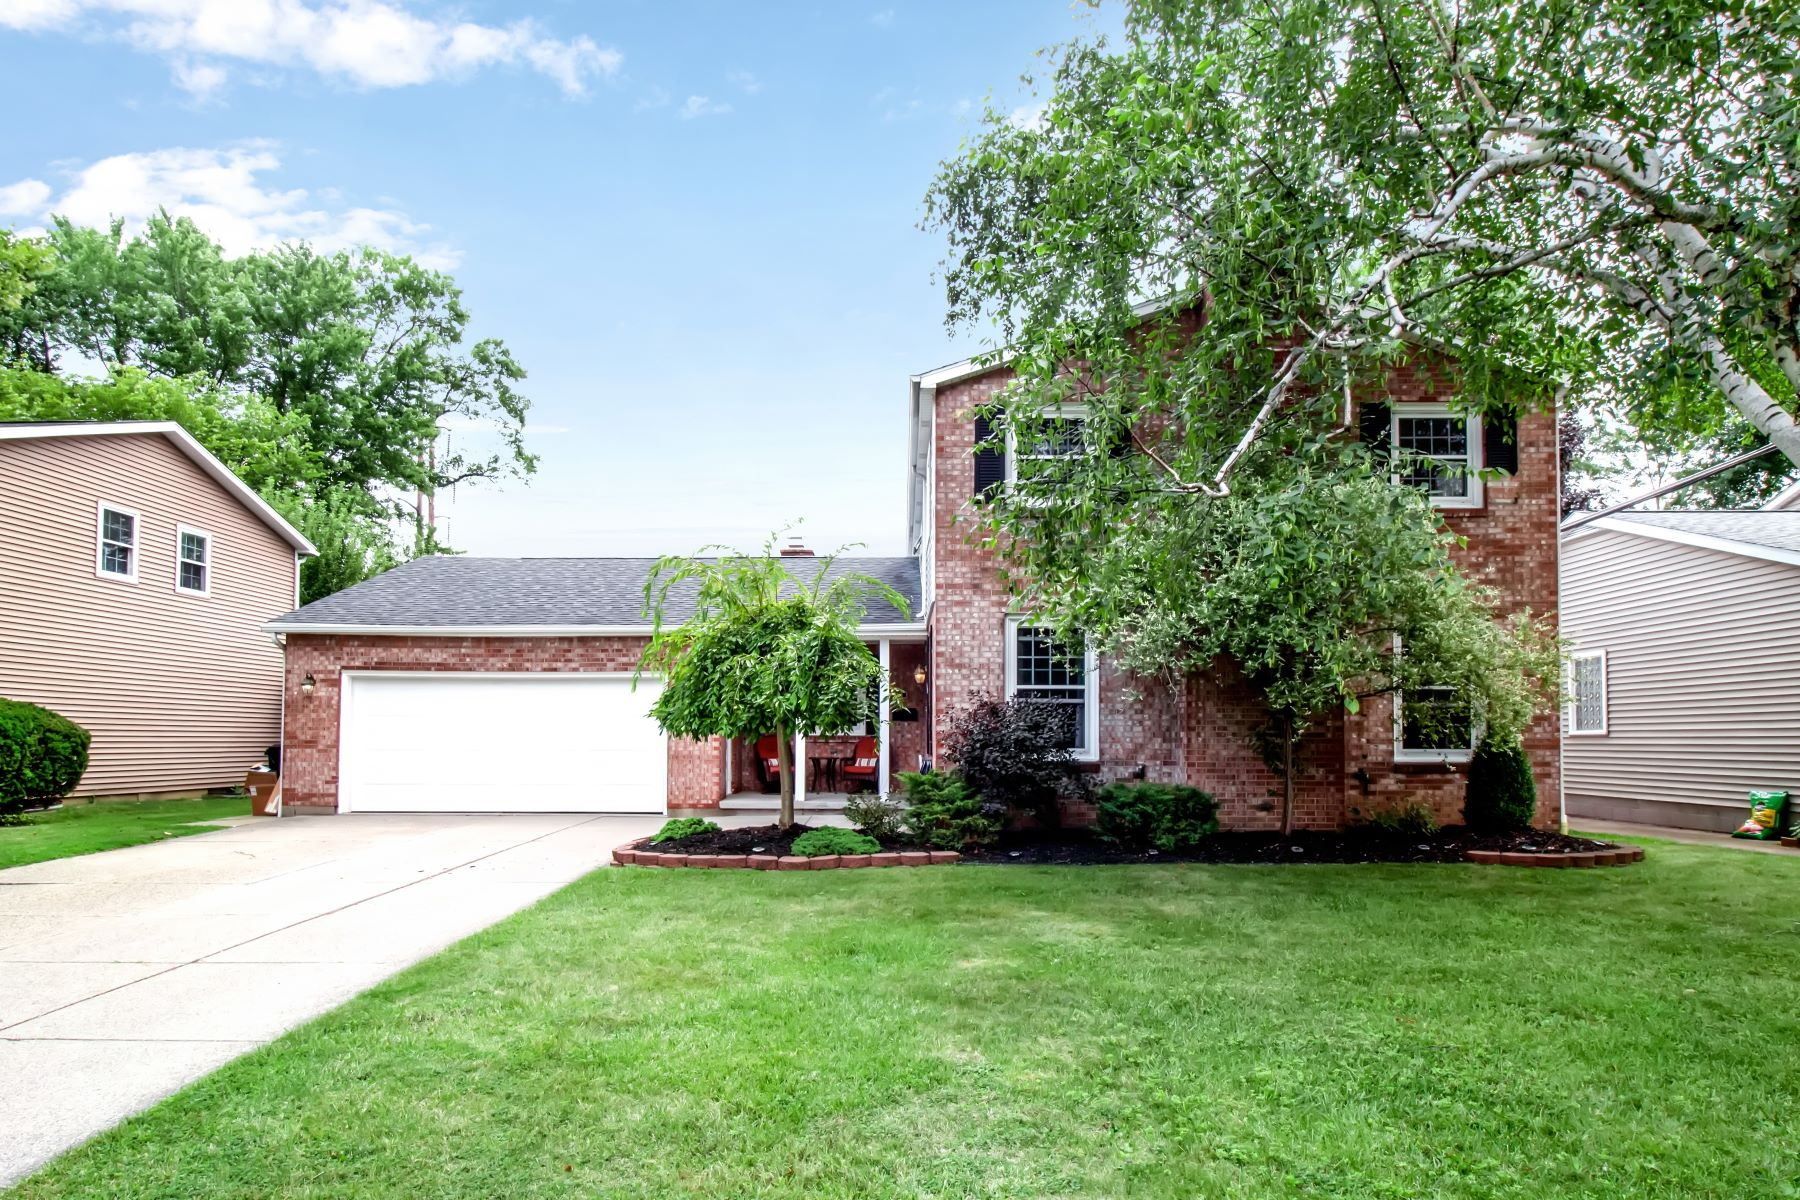 Single Family Homes for Sale at Willowgrove Colonial 149 Willowgrove Tonawanda, New York 14150 United States